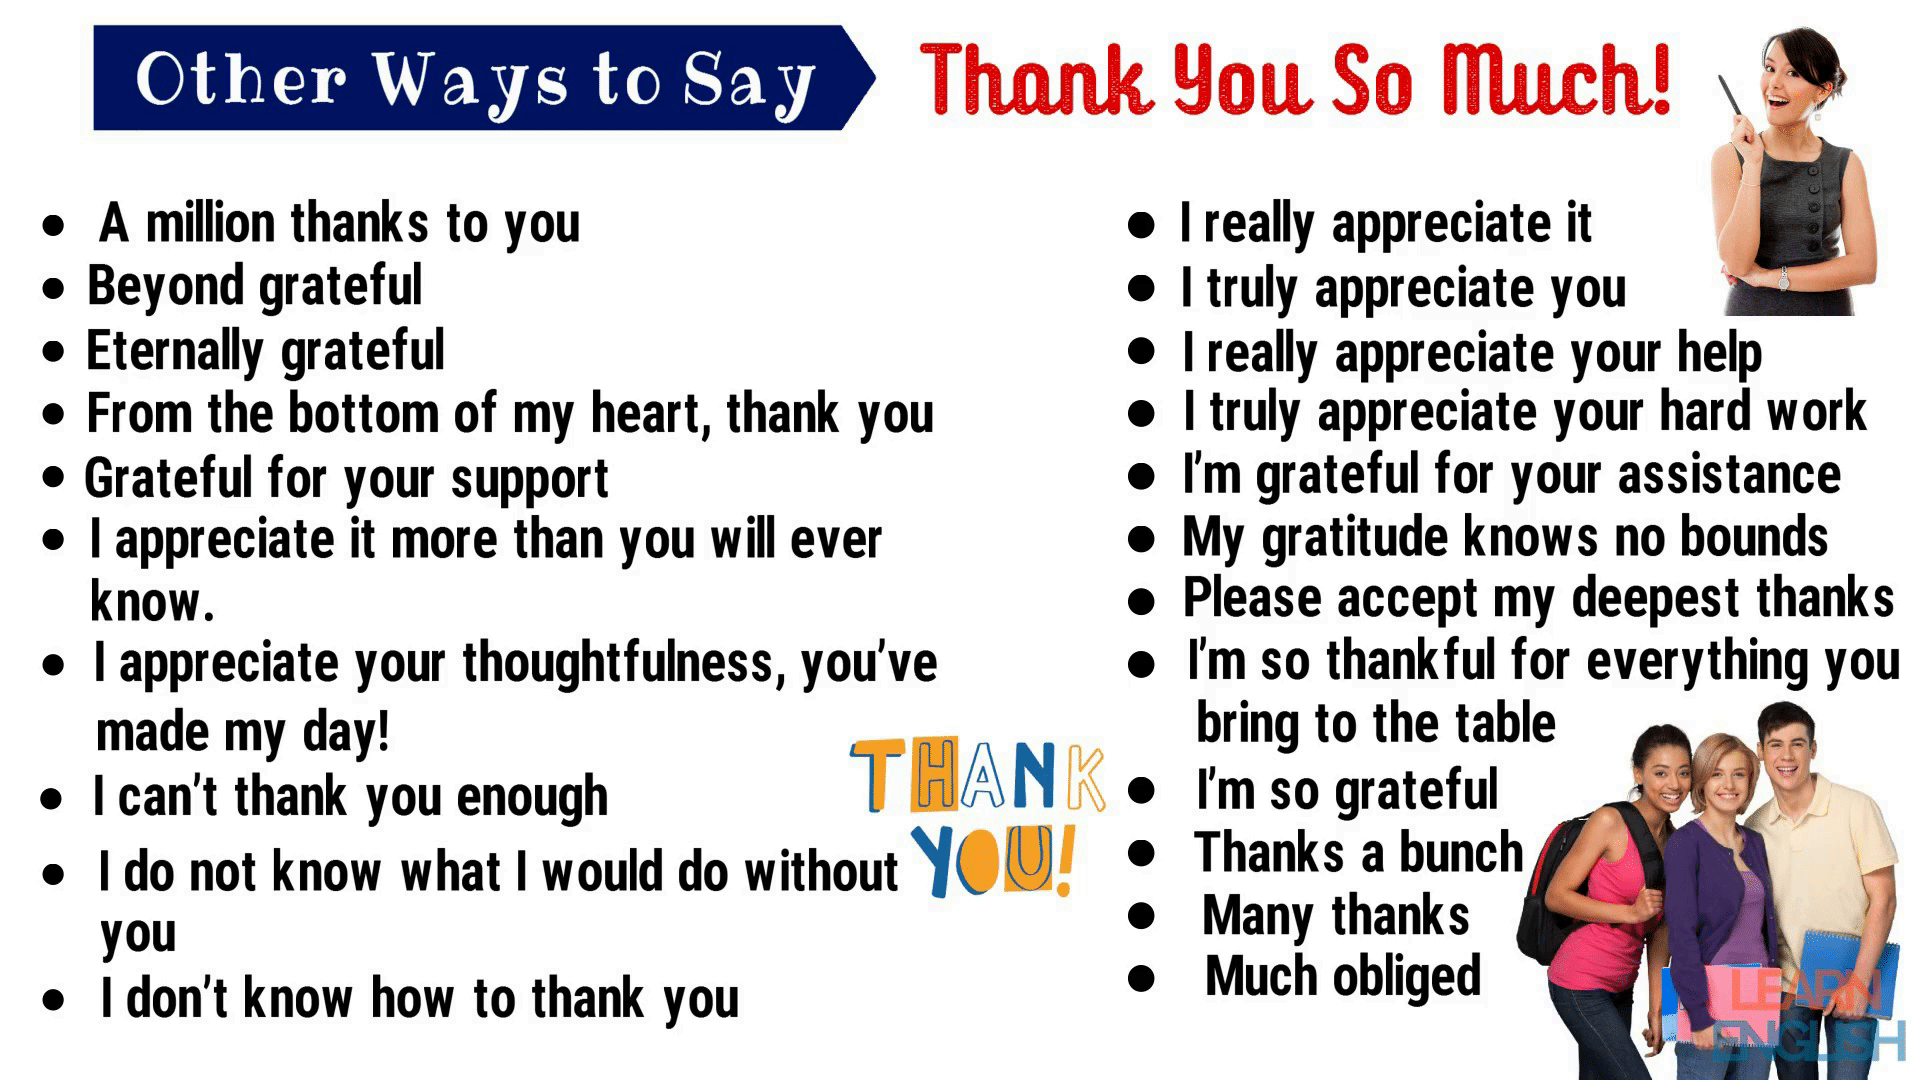 Thank You Synonym | 45+ Powerful Synonyms for Thank You for ESL Learners 2